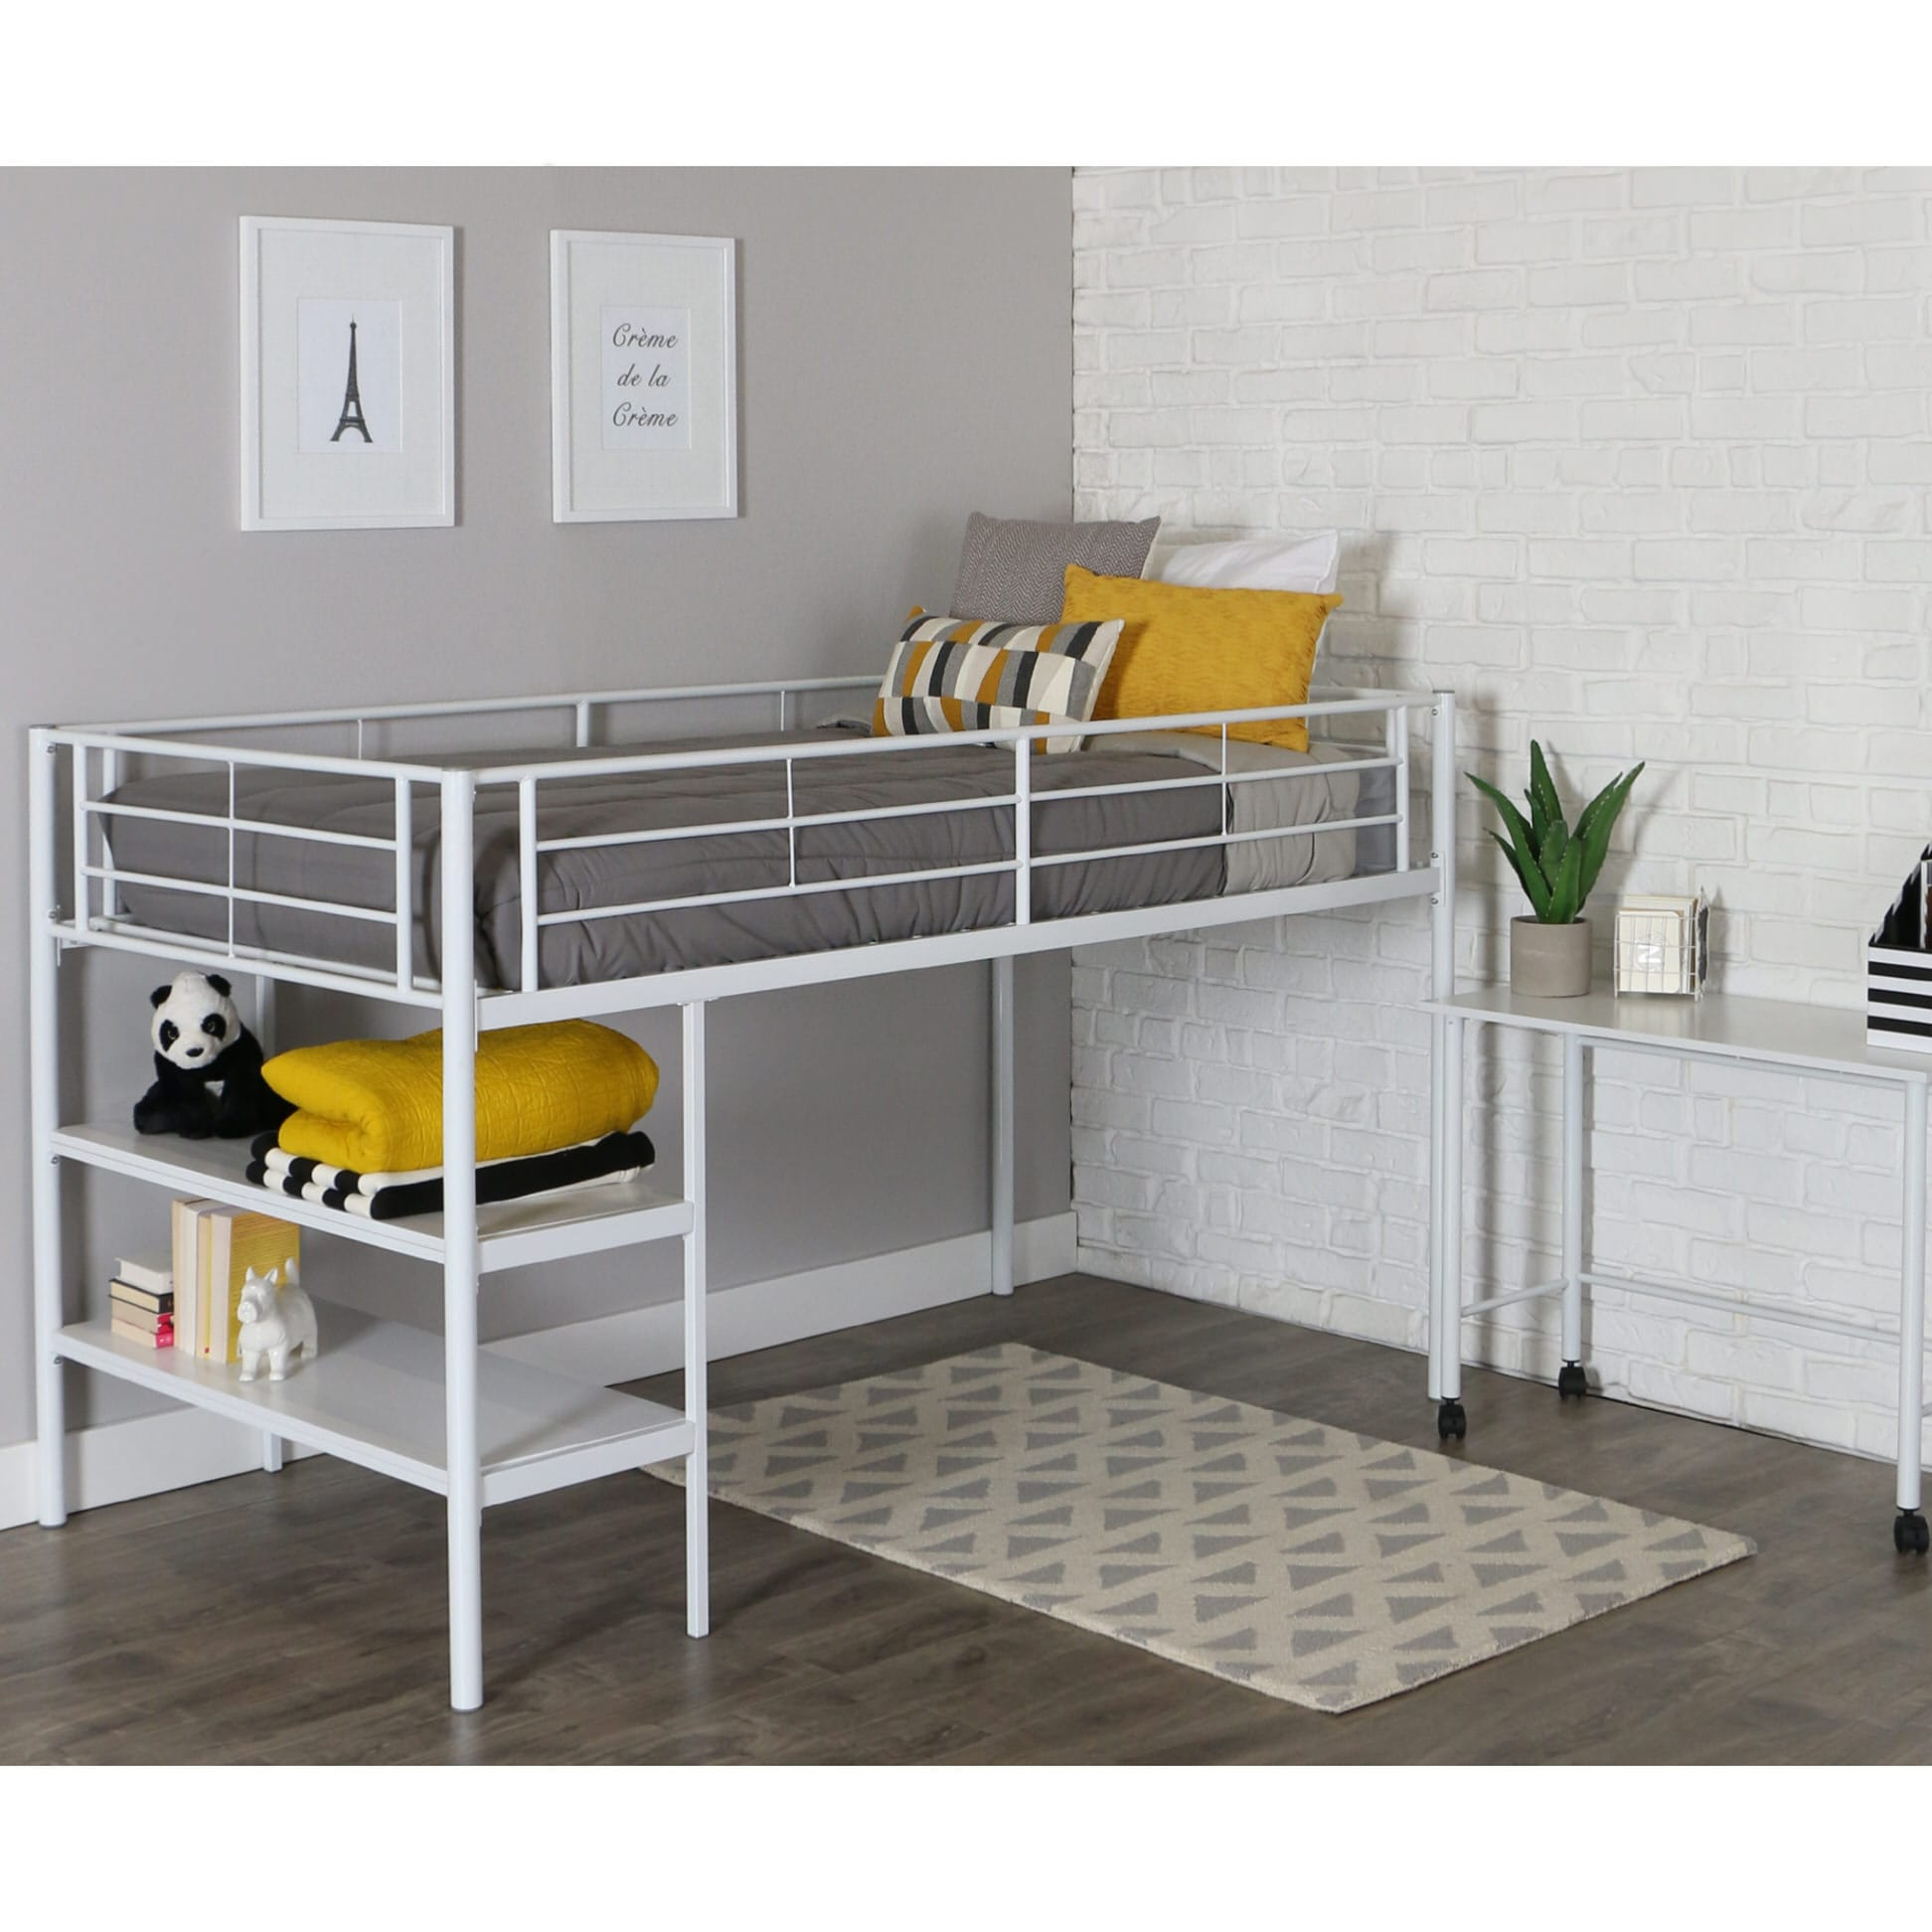 Bed With Desk Sunset Twin Loft Bed With Desk And Shelves White By Walker Edison